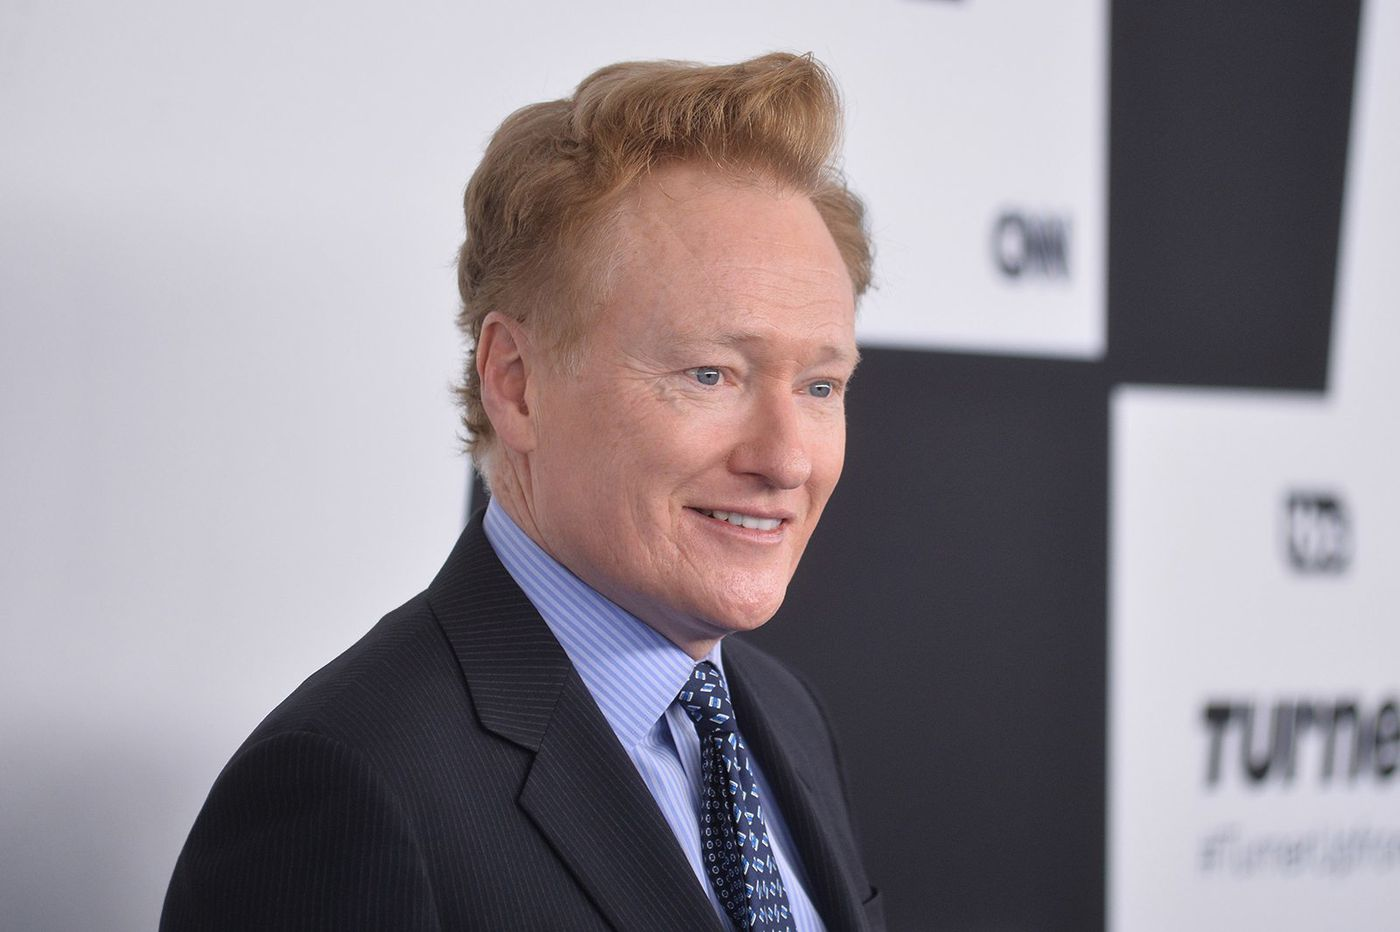 Conan O'Brien to end nightly talk show in move to HBO Max